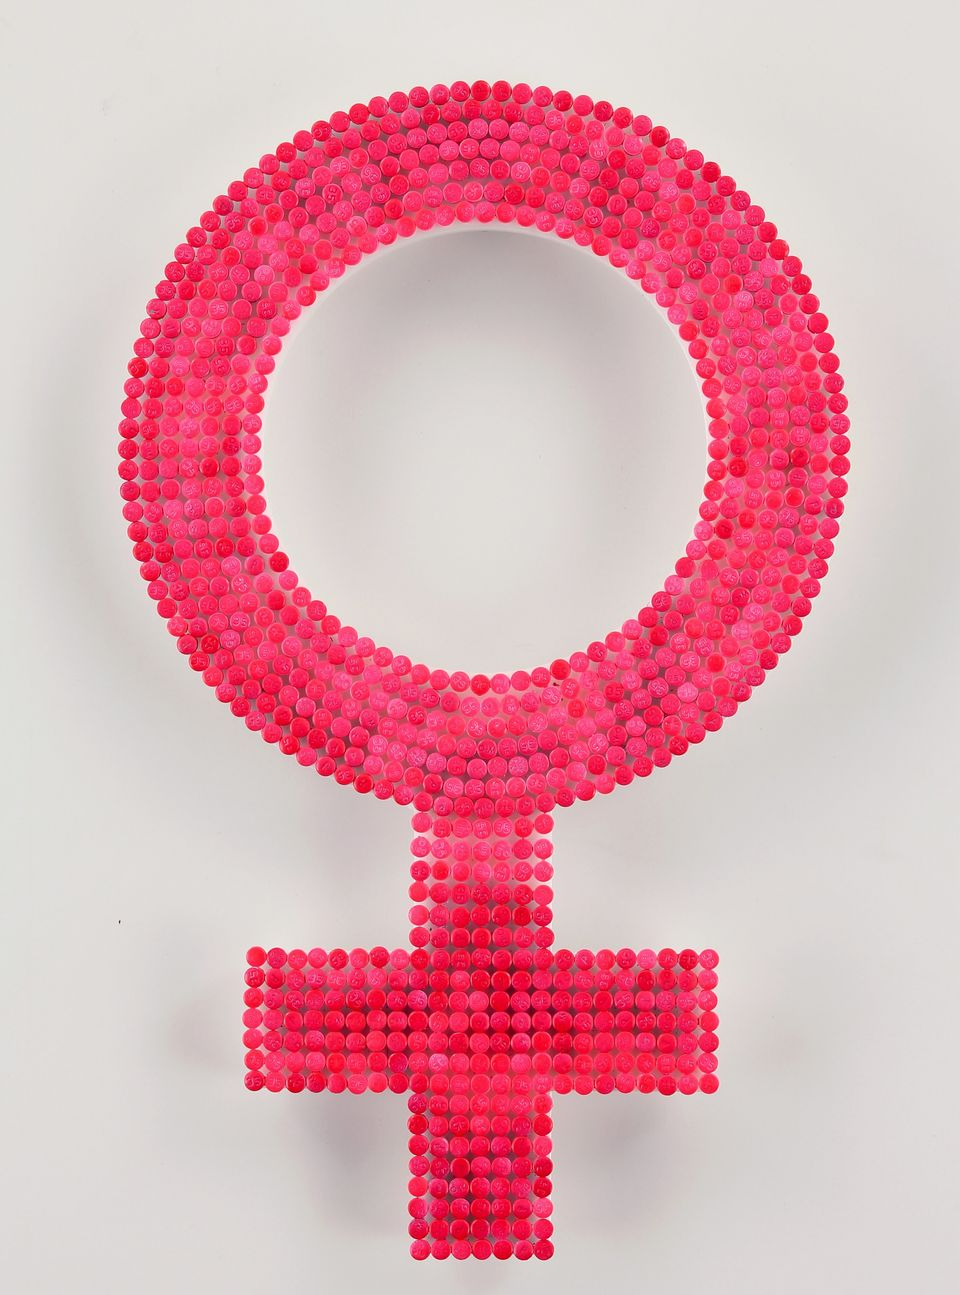 Michele Pred Untitled (Women's Symbol) 2013 birth control pills, enamel and plexi 12 x 7 1/2 x 1/2 inches